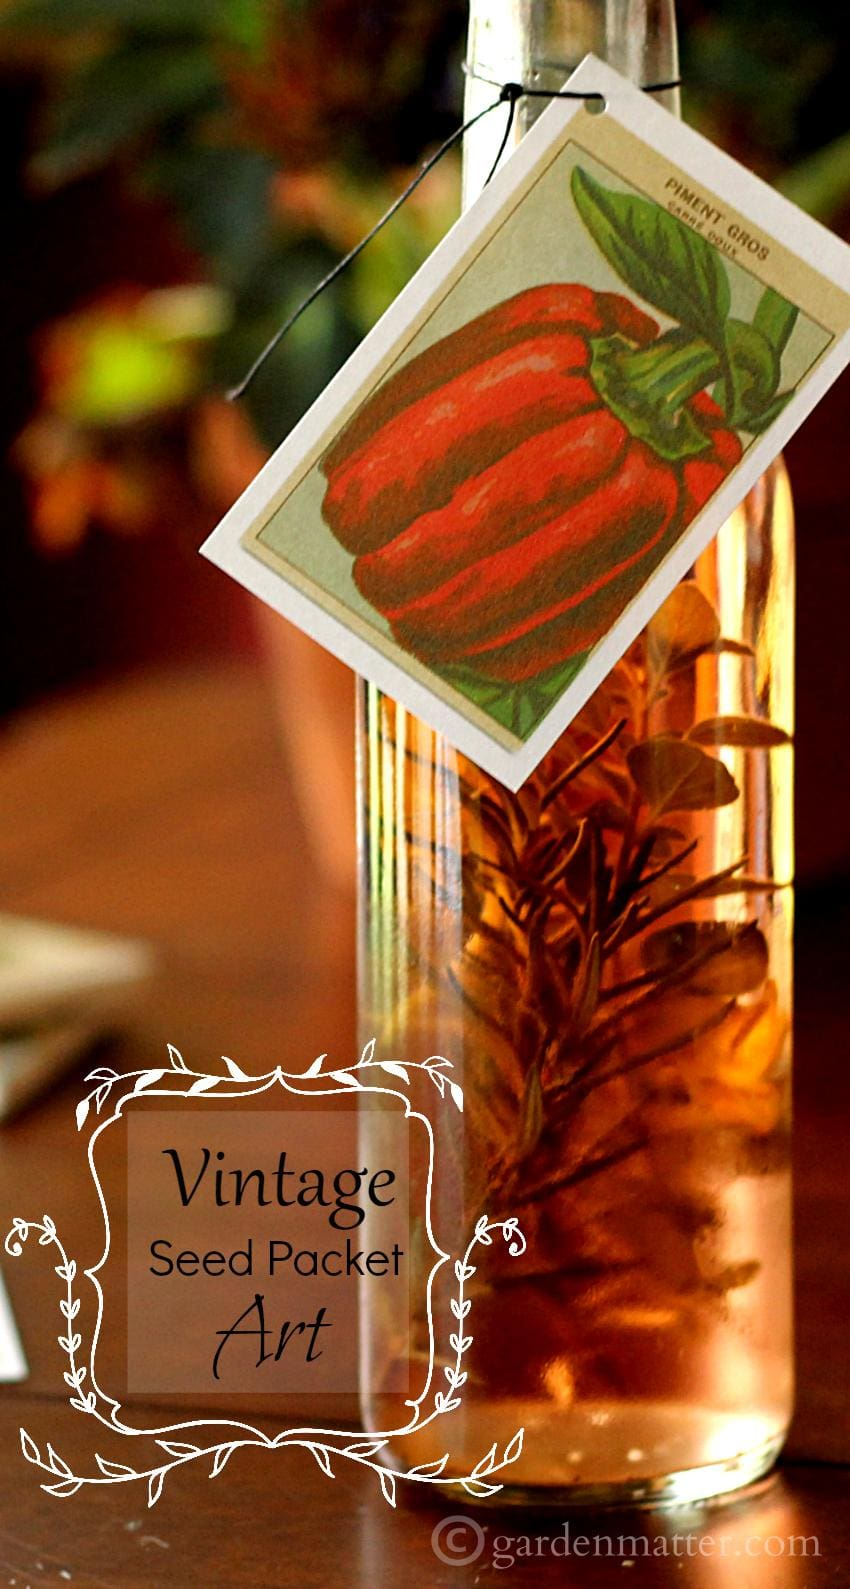 Enjoy making many paper crafts with vintage seed packet prints. Several free printables available for your crafting pleasure.